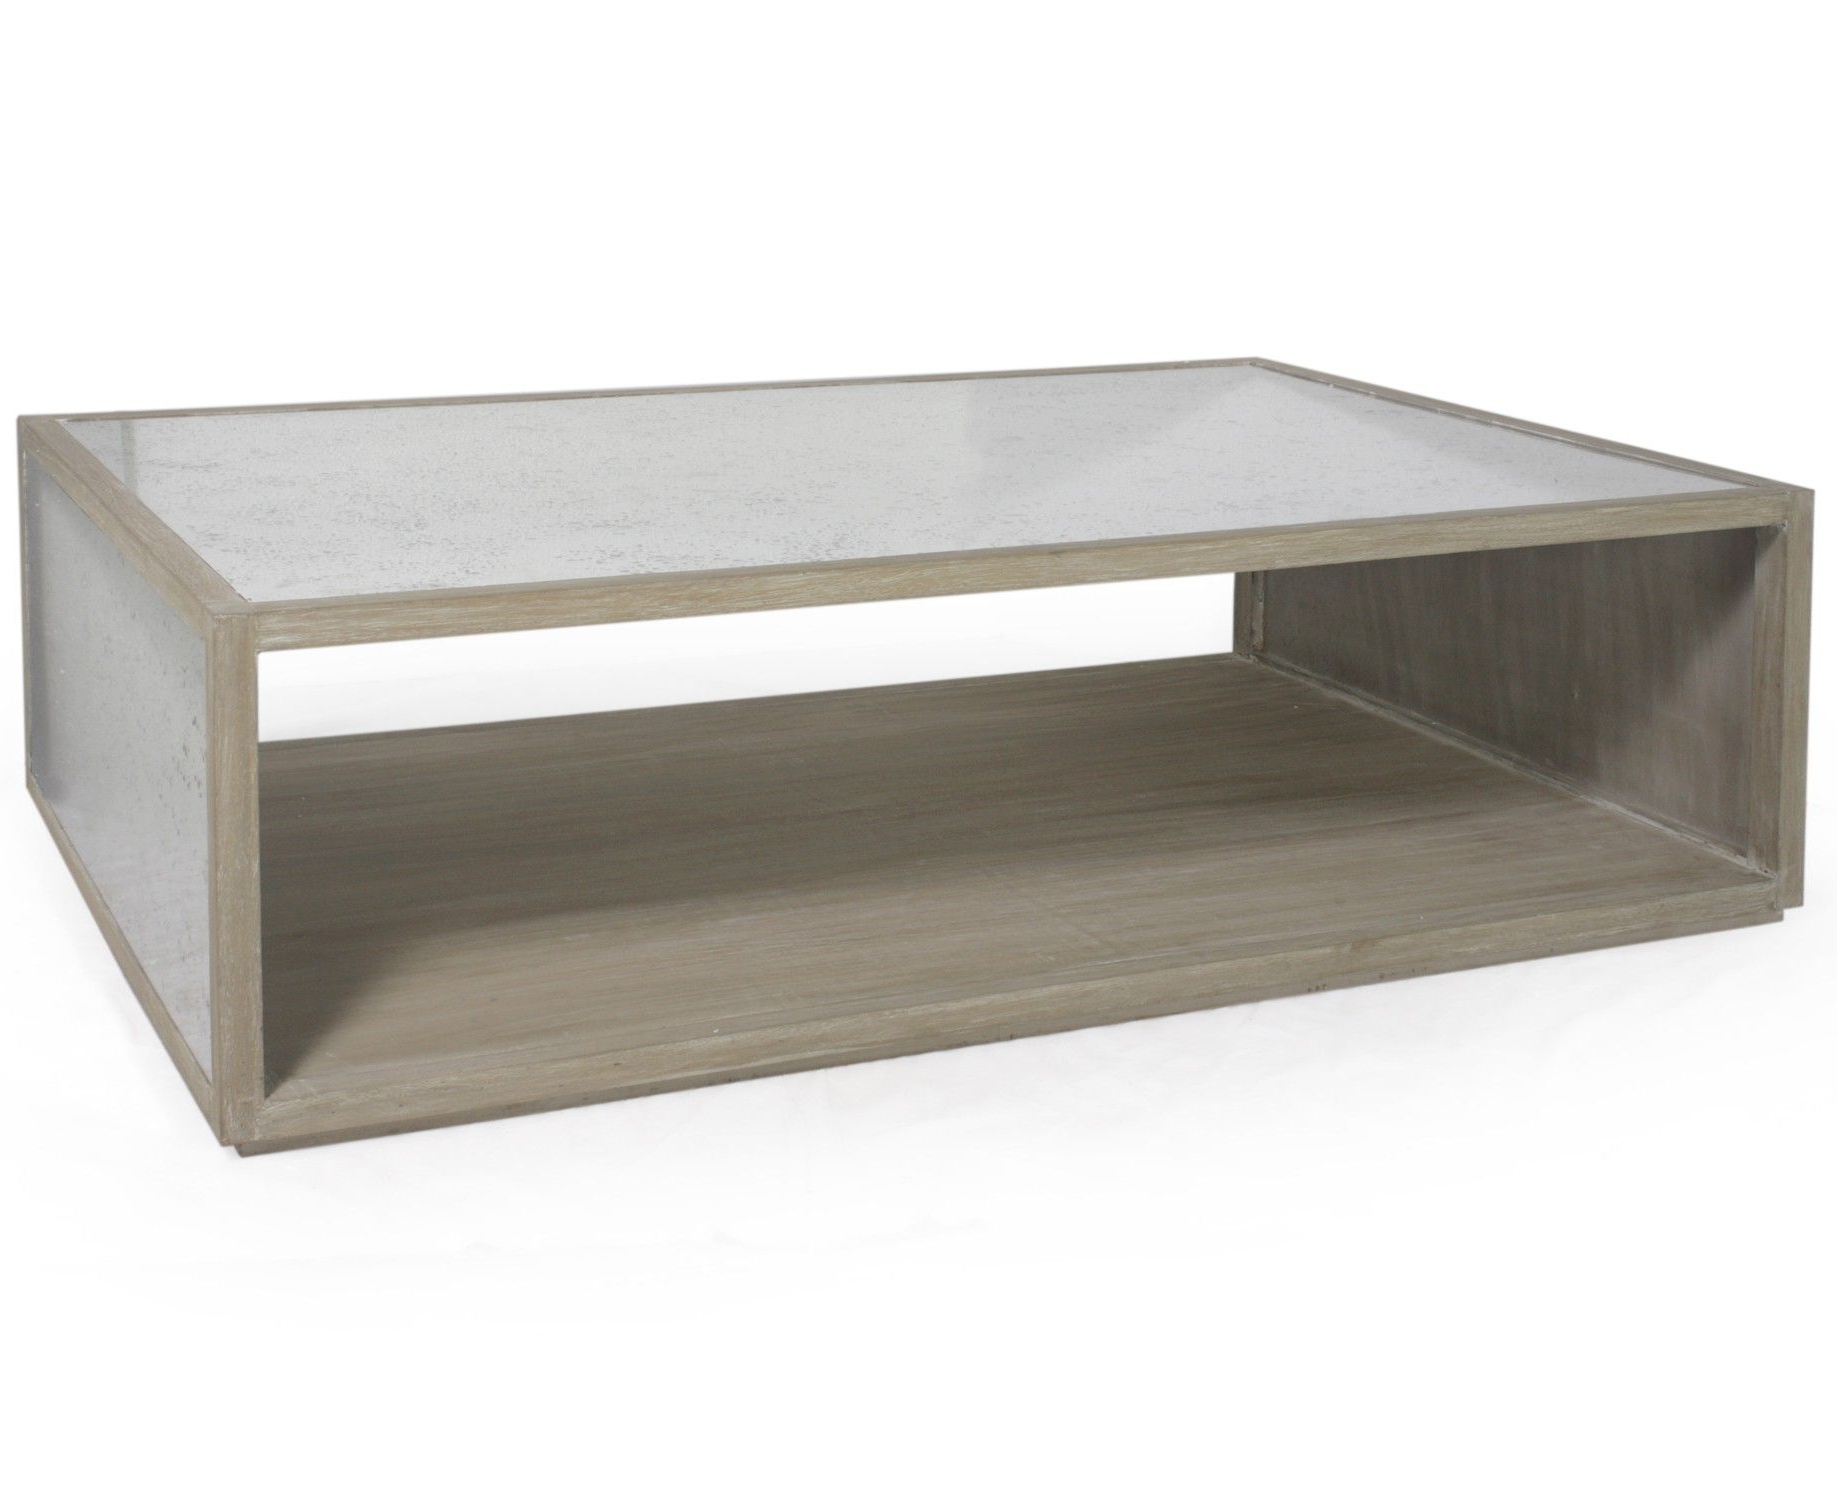 Artesia – V1 Derek Ct Lw Derek Coffee Table Lime Wash With Antique Inside Best And Newest Limewash Coffee Tables (View 2 of 20)